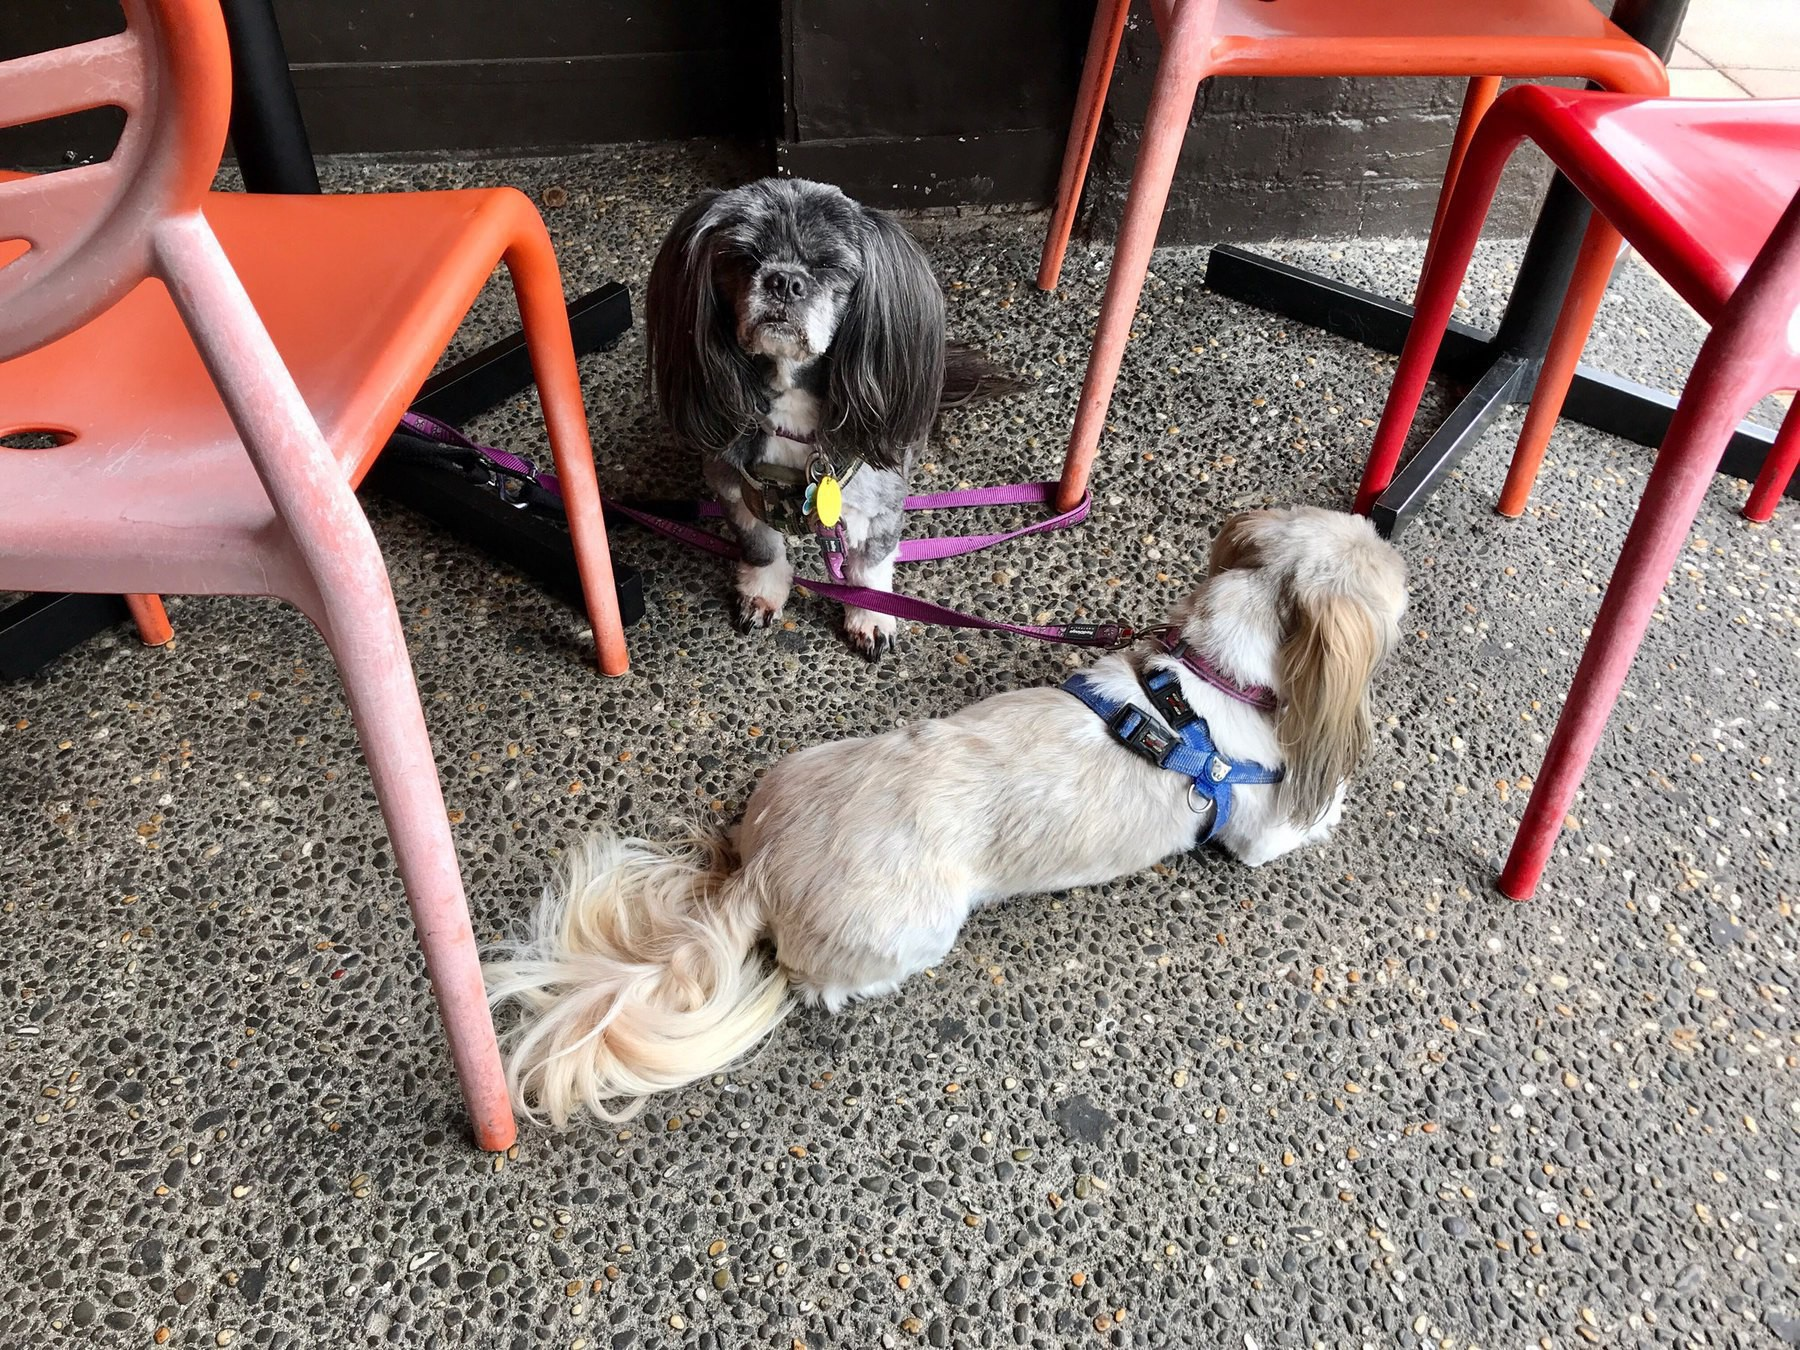 Two small dogs tied to cafe chairs.